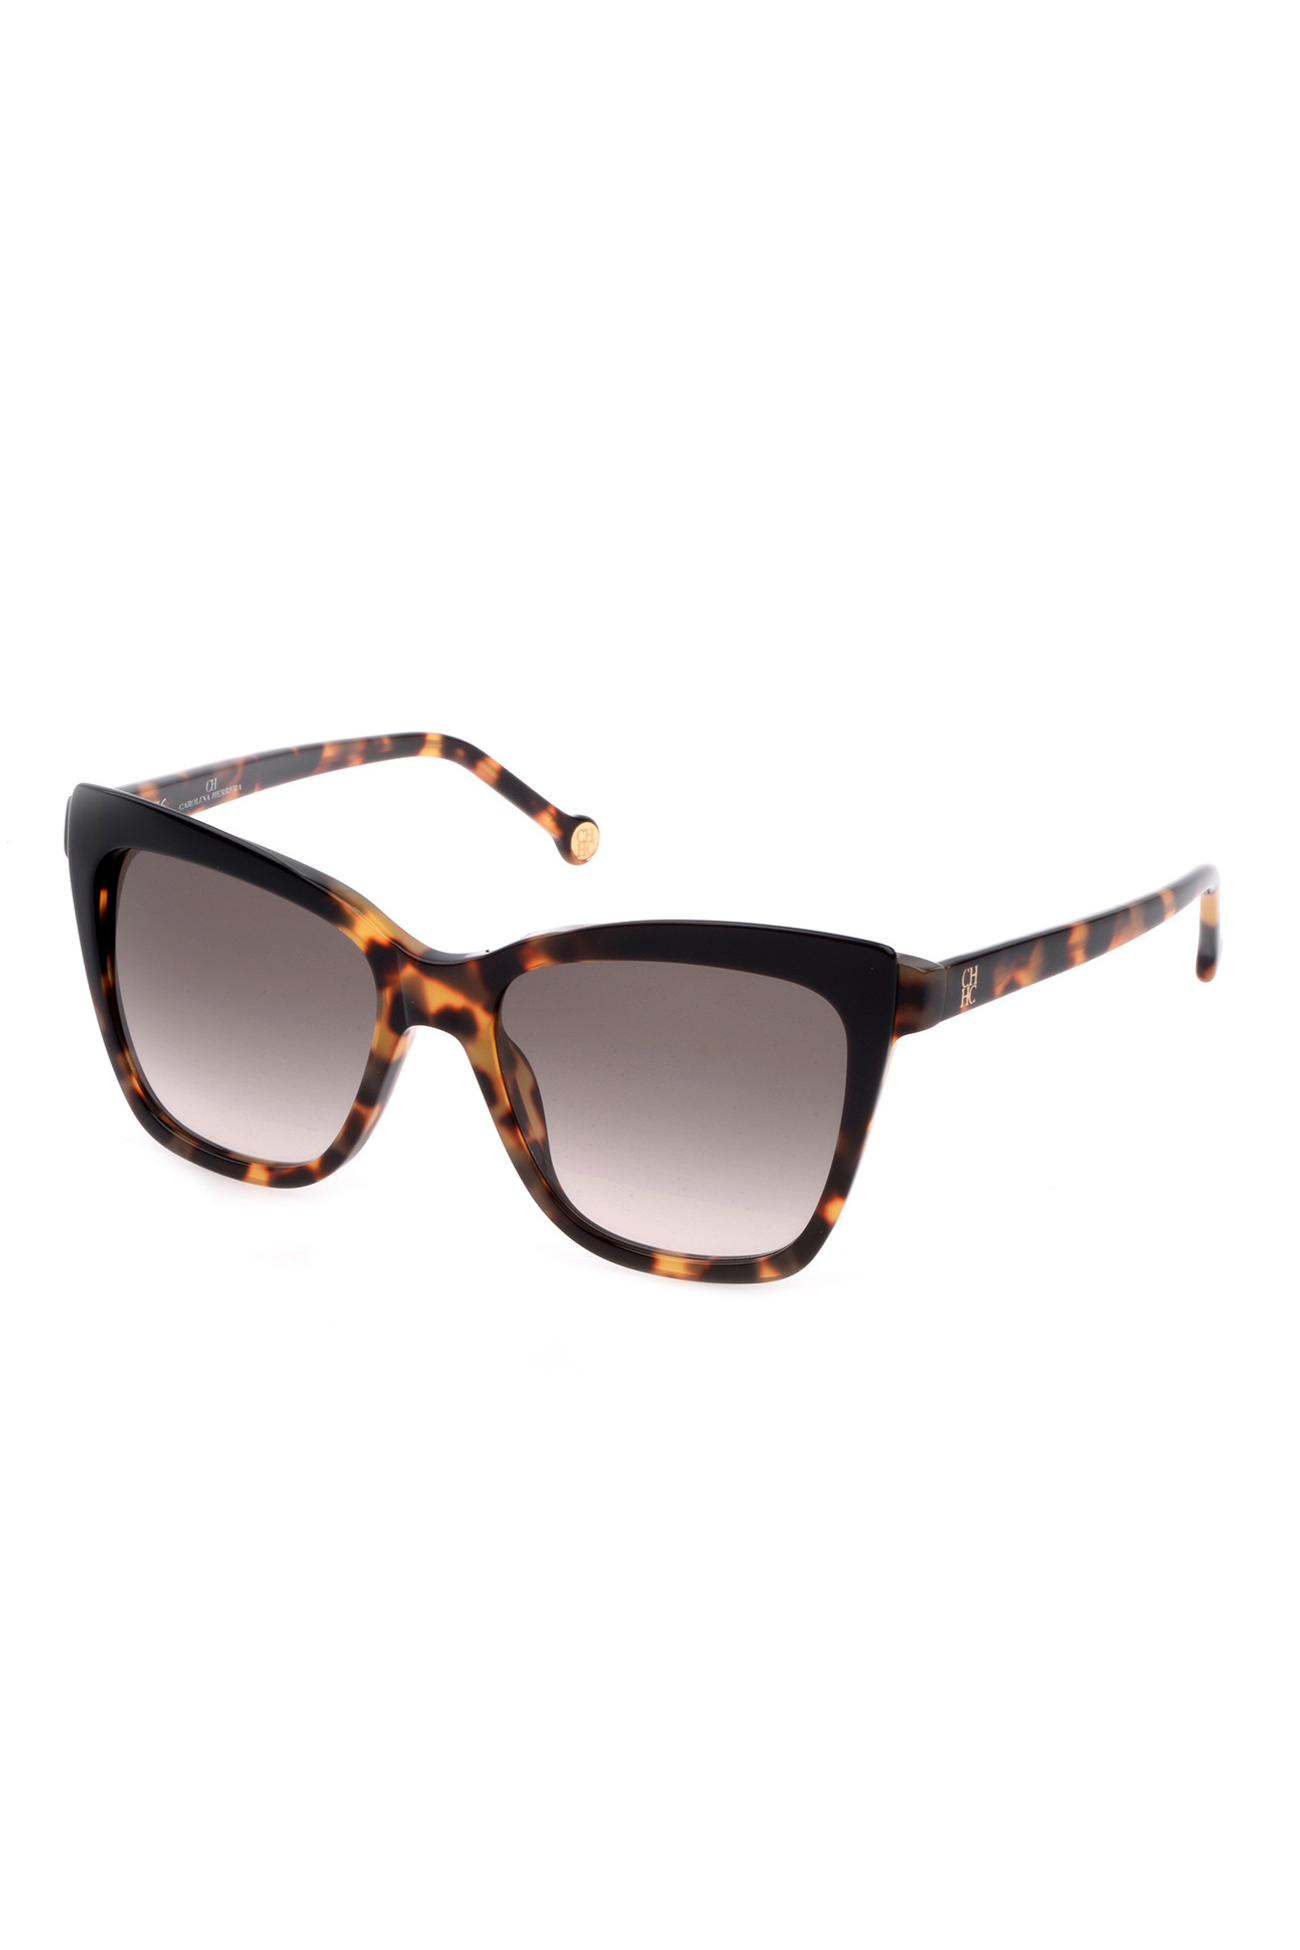 ch carolina herrera women eyewear